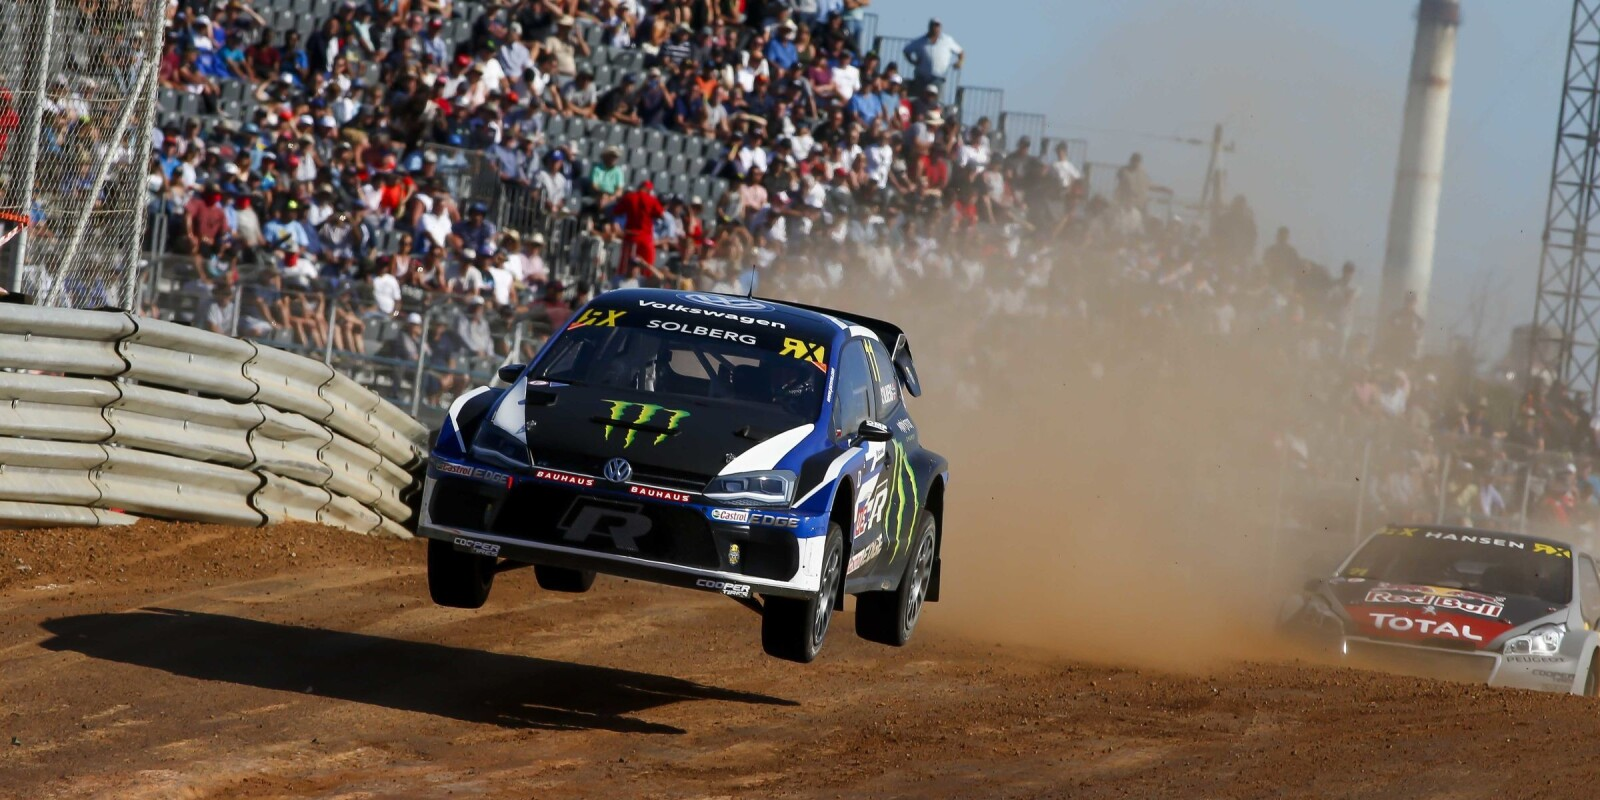 Cape Town RX | South Africa - 2018